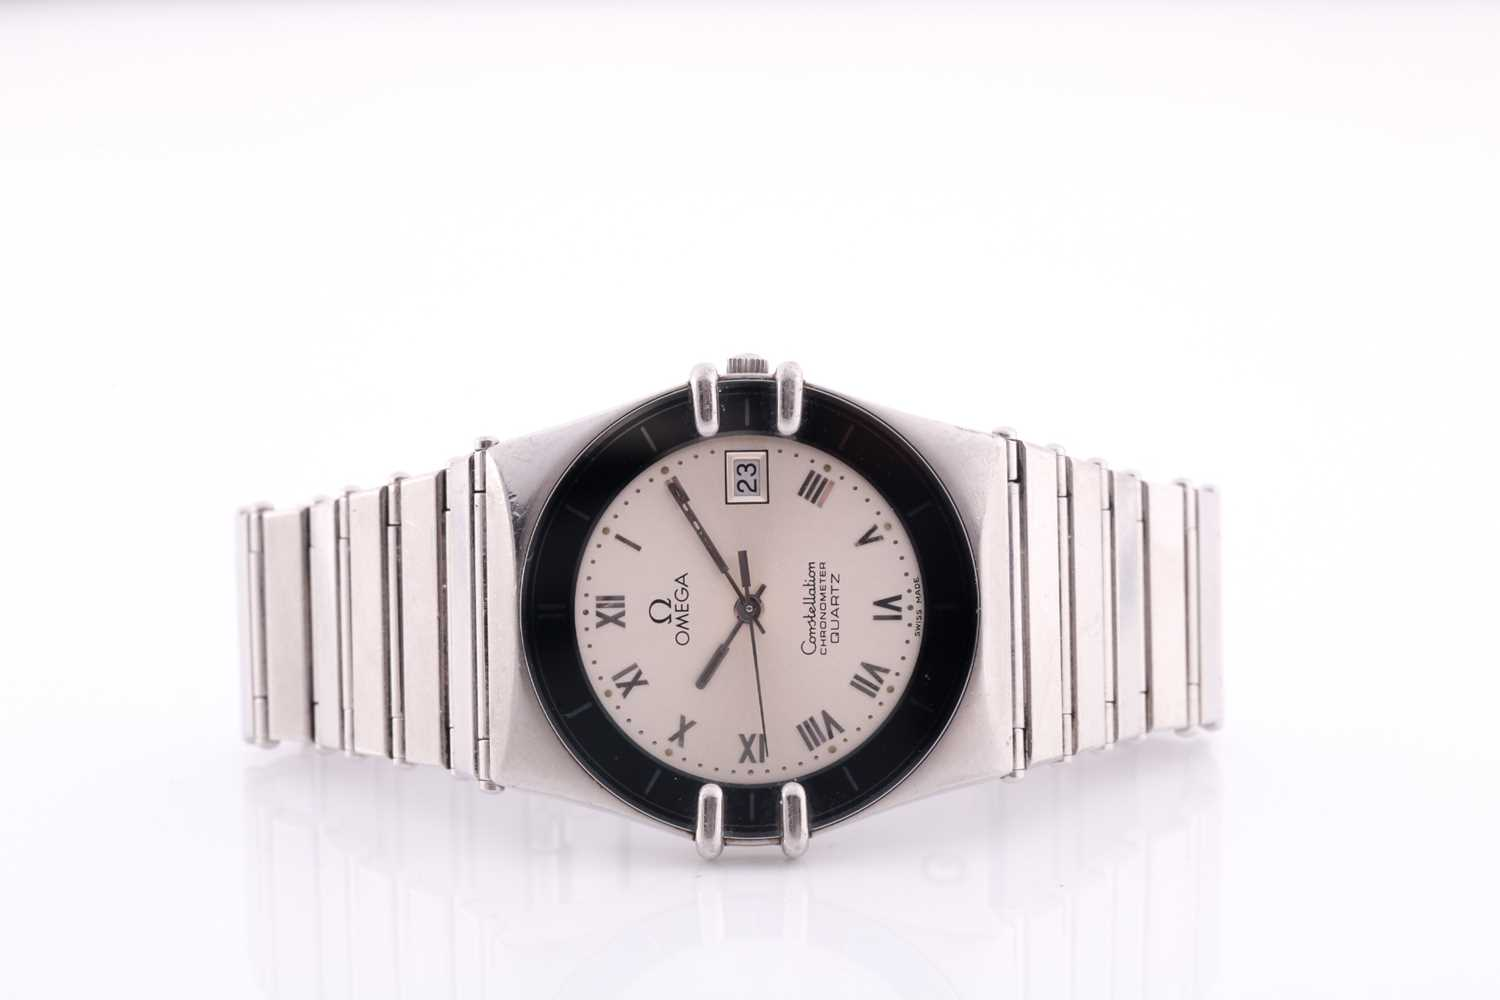 An Omega Constellation chronometer quartz wristwatch, with date aperture and Roman numeral dial, - Image 5 of 5